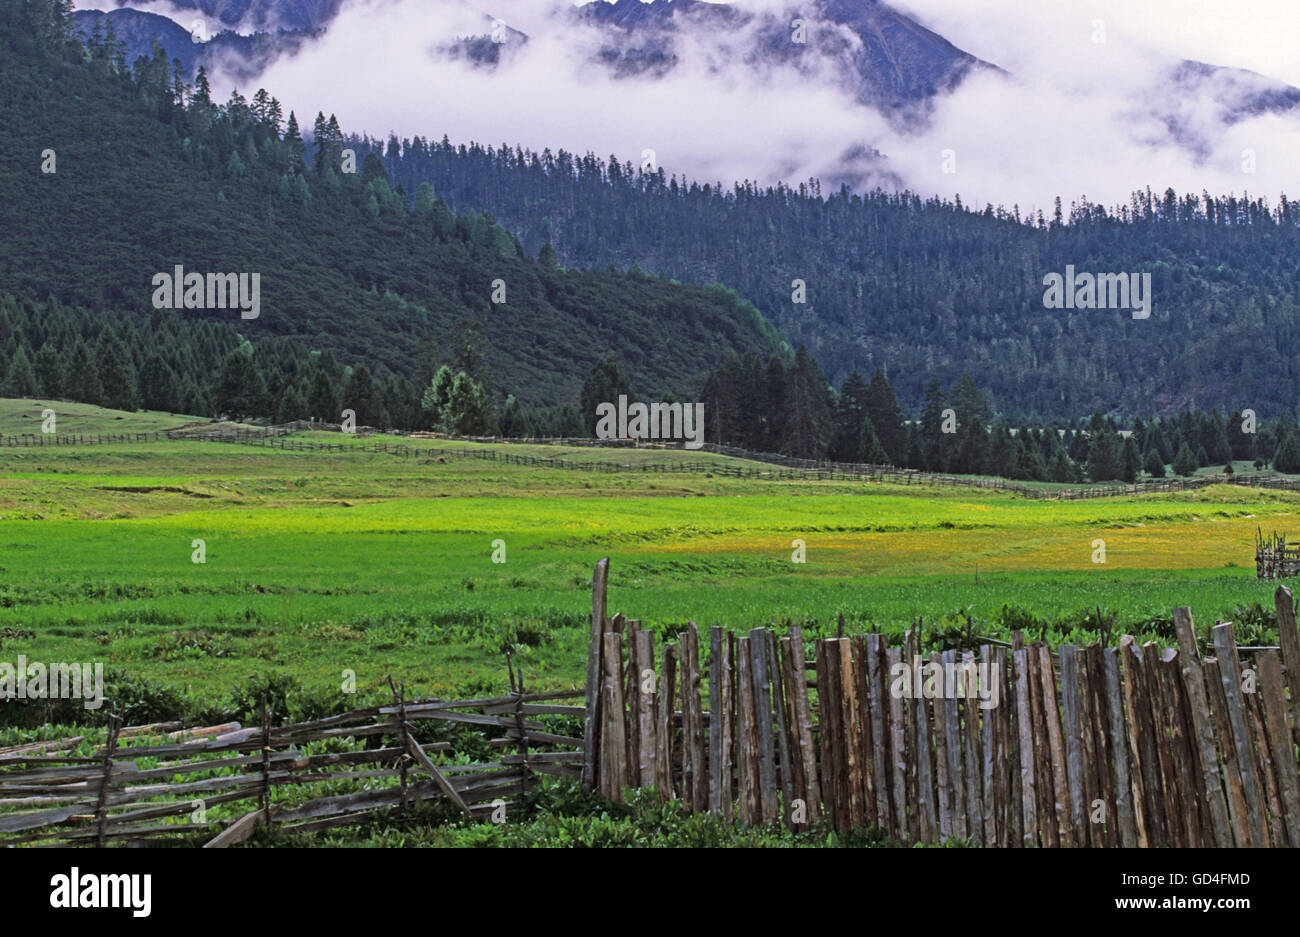 Fenced field - Stock Image